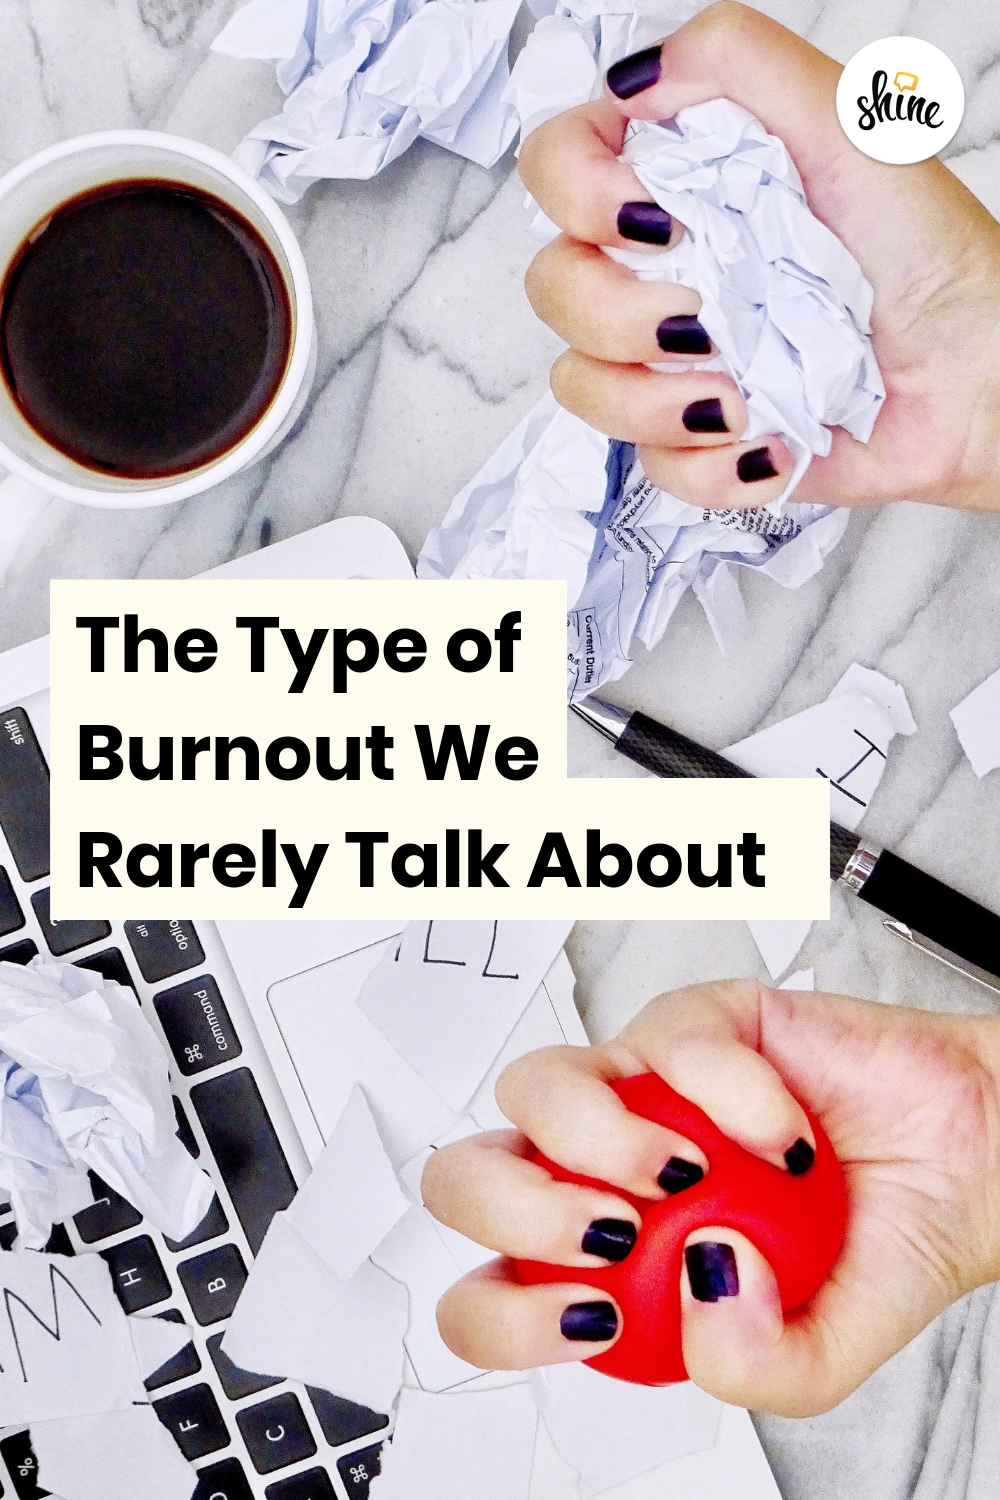 The Type of Burnout We Rarely Talk About